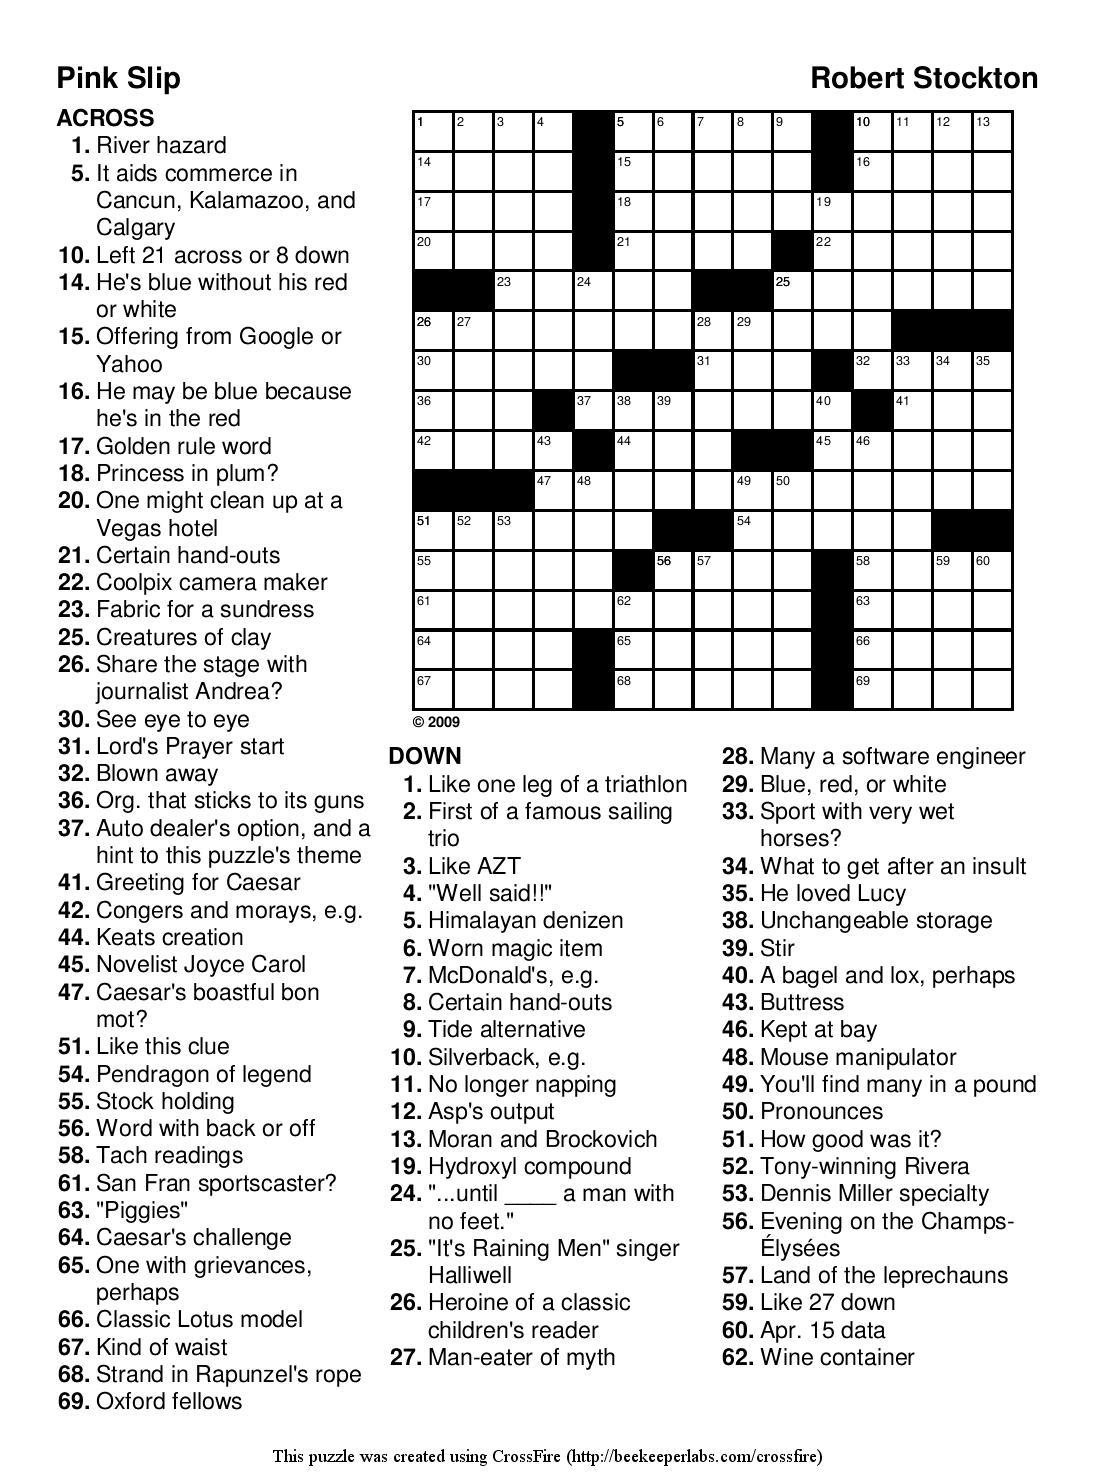 Printable Puzzles For Adults | Easy Word Puzzles Printable Festivals - Printable Crossword Puzzles Medium With Answers